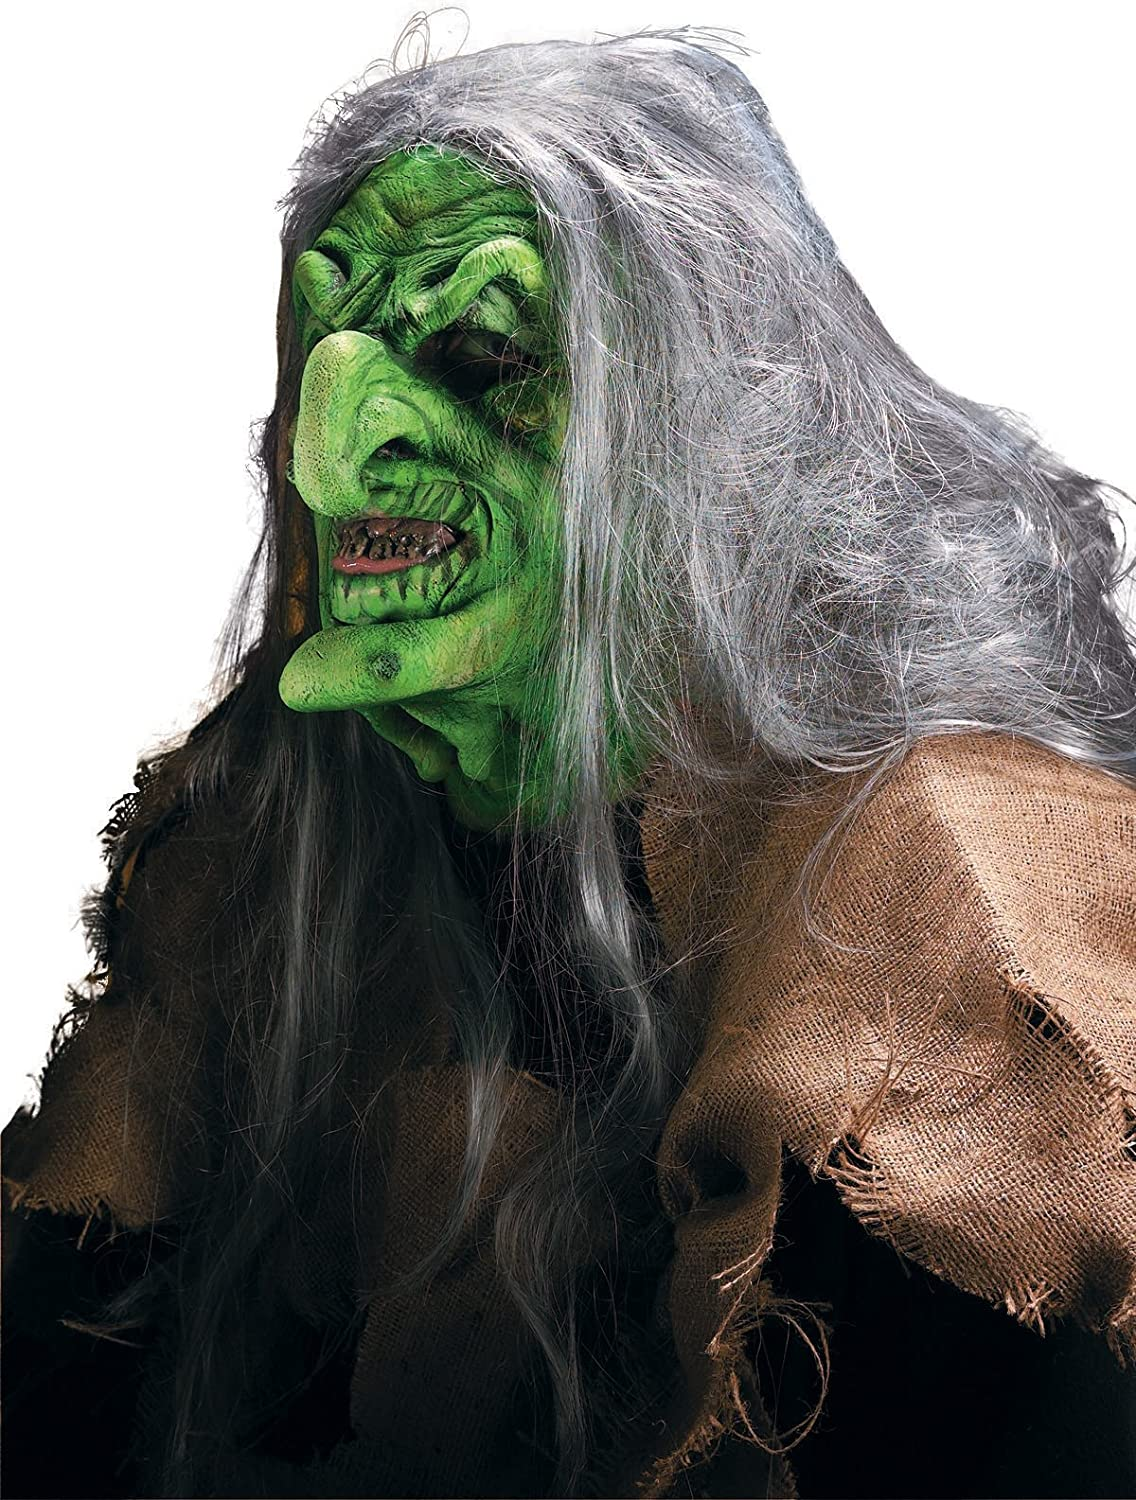 Rubie's Reel Denver Mall FX Green Witch Quality Theater Costume Free shipping Mask Makeup